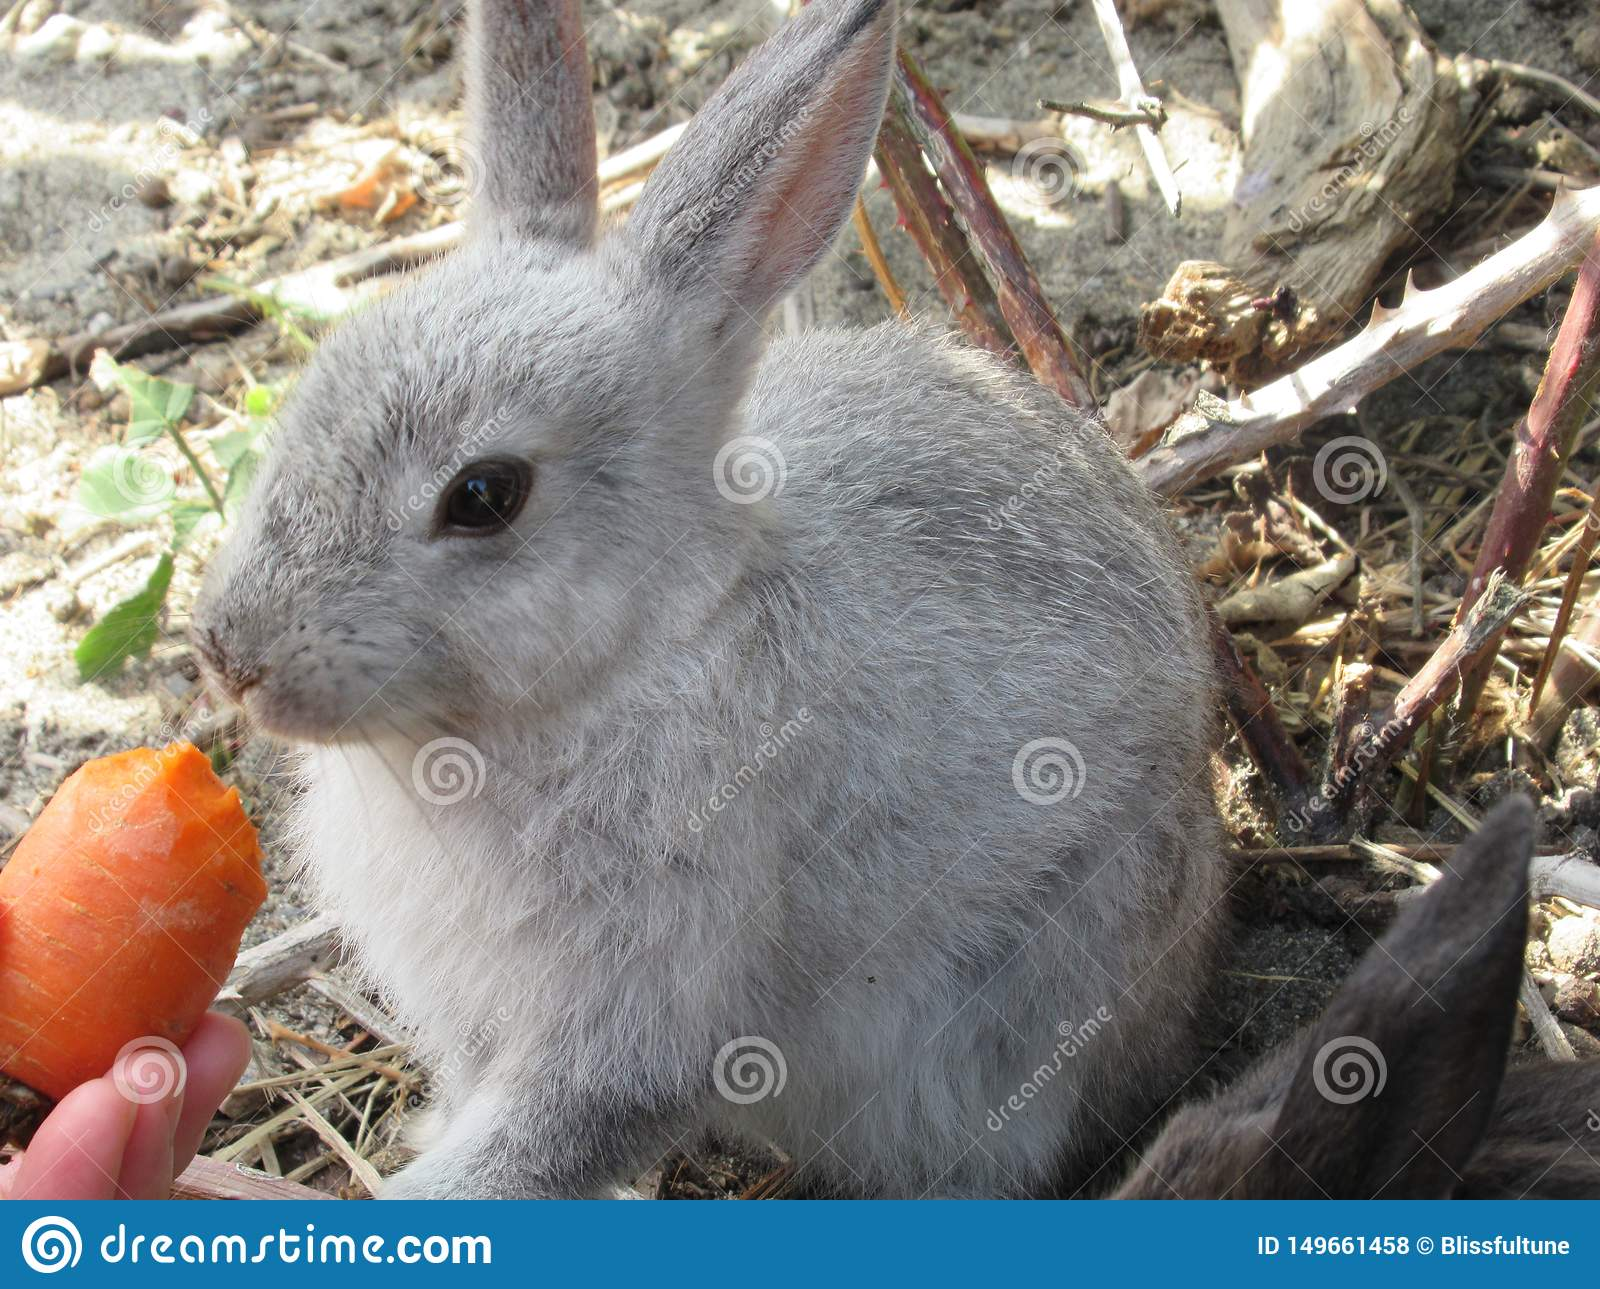 Bright attractive white young bunny rabbit fed a carrot